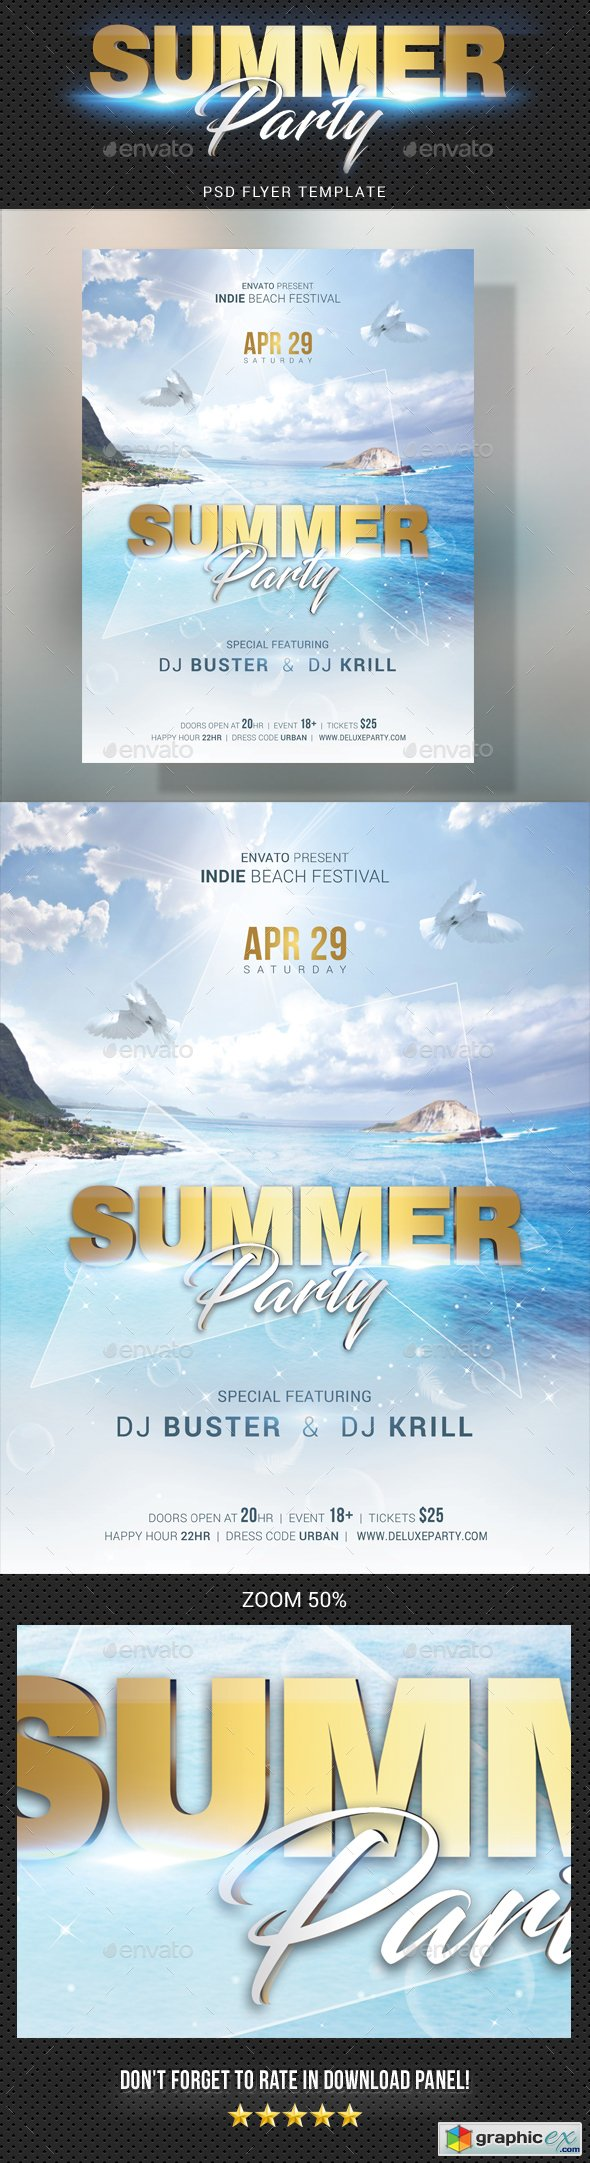 Summer Dj Party Flyer